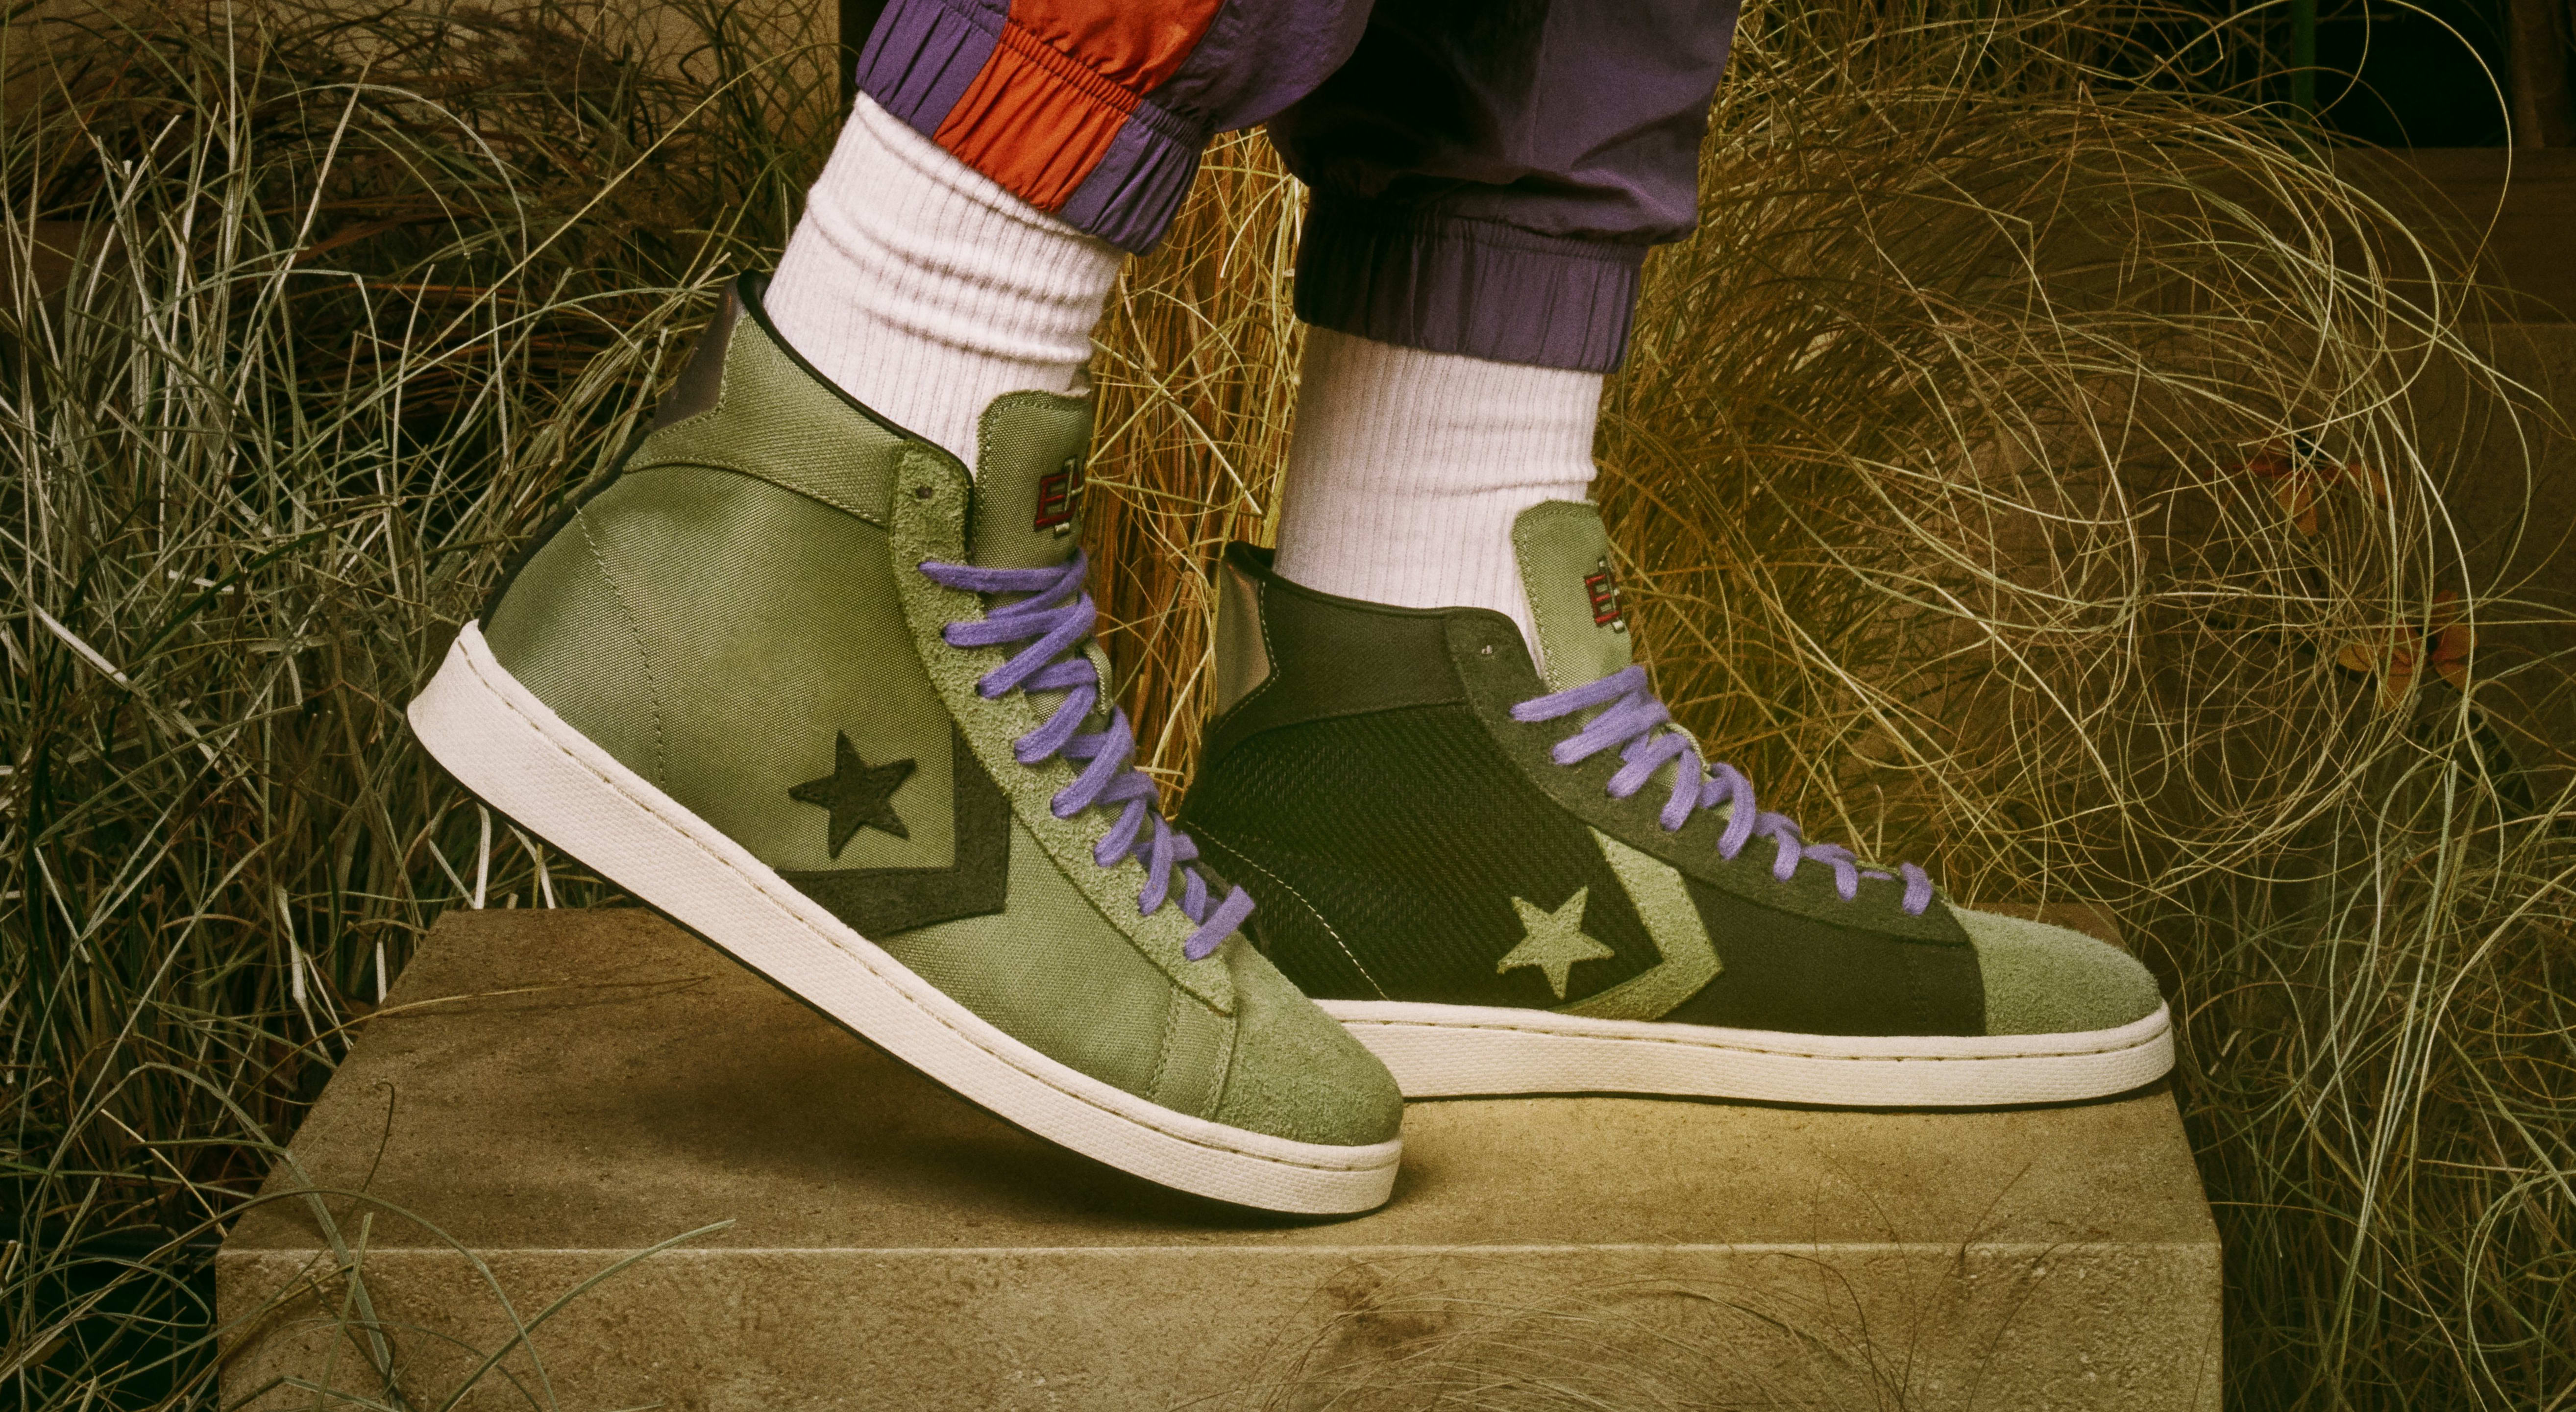 converse-pro-leather-bhm-2020-side